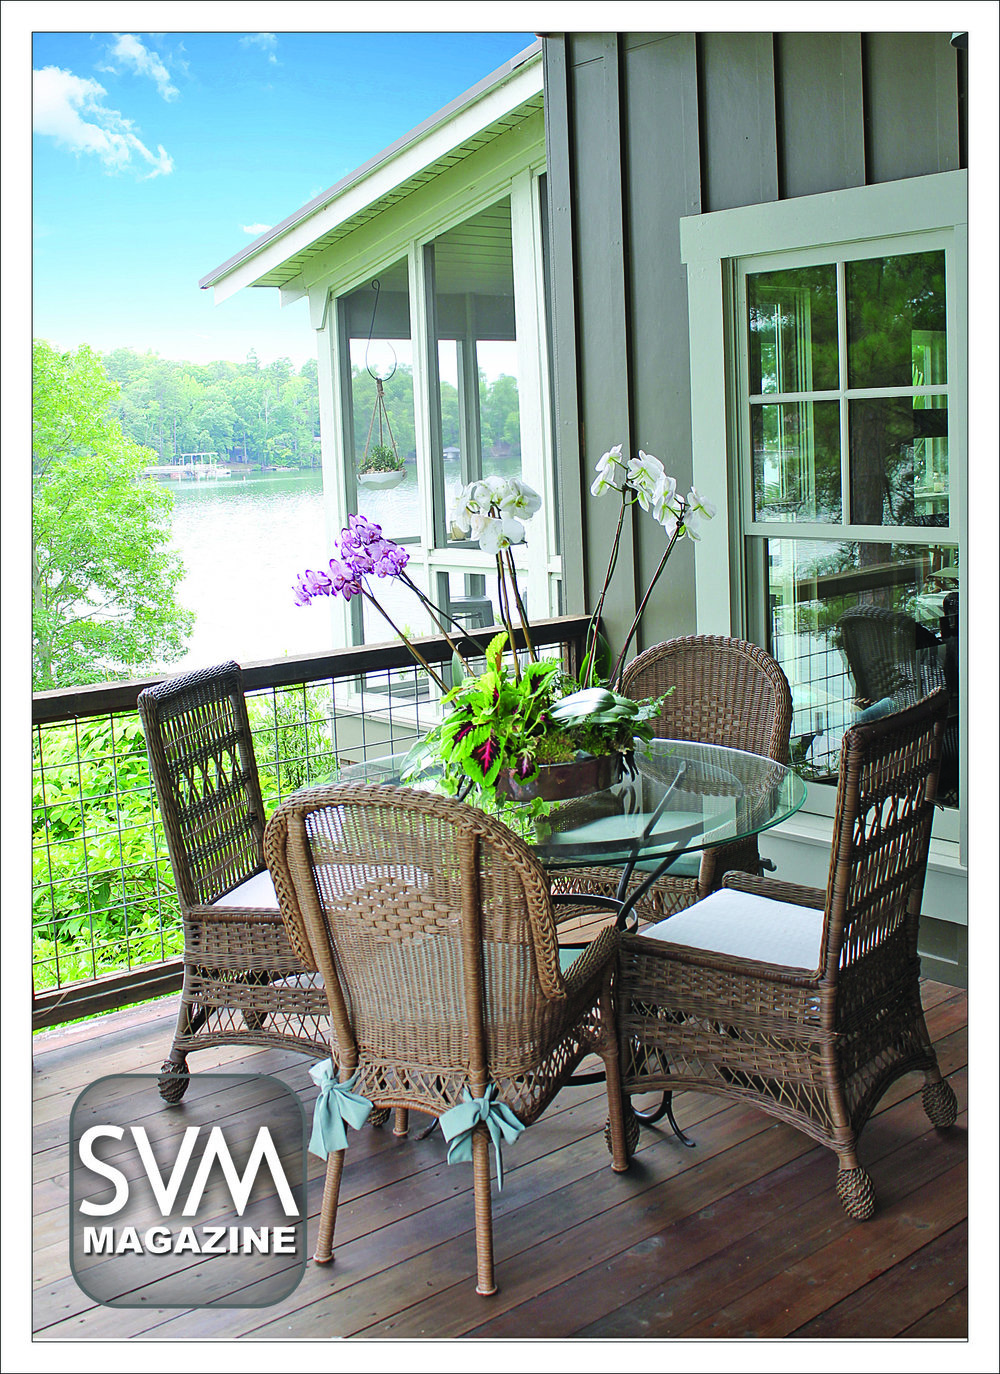 With abundant views of Lake Harding, the Peek's refurbished side porch is the perfect place for a family breakfast. The Peeks dress the table with orchids and surround it with four wicker chairs for seating. With a hogwire railing, one's view of the lake is unobstructed.